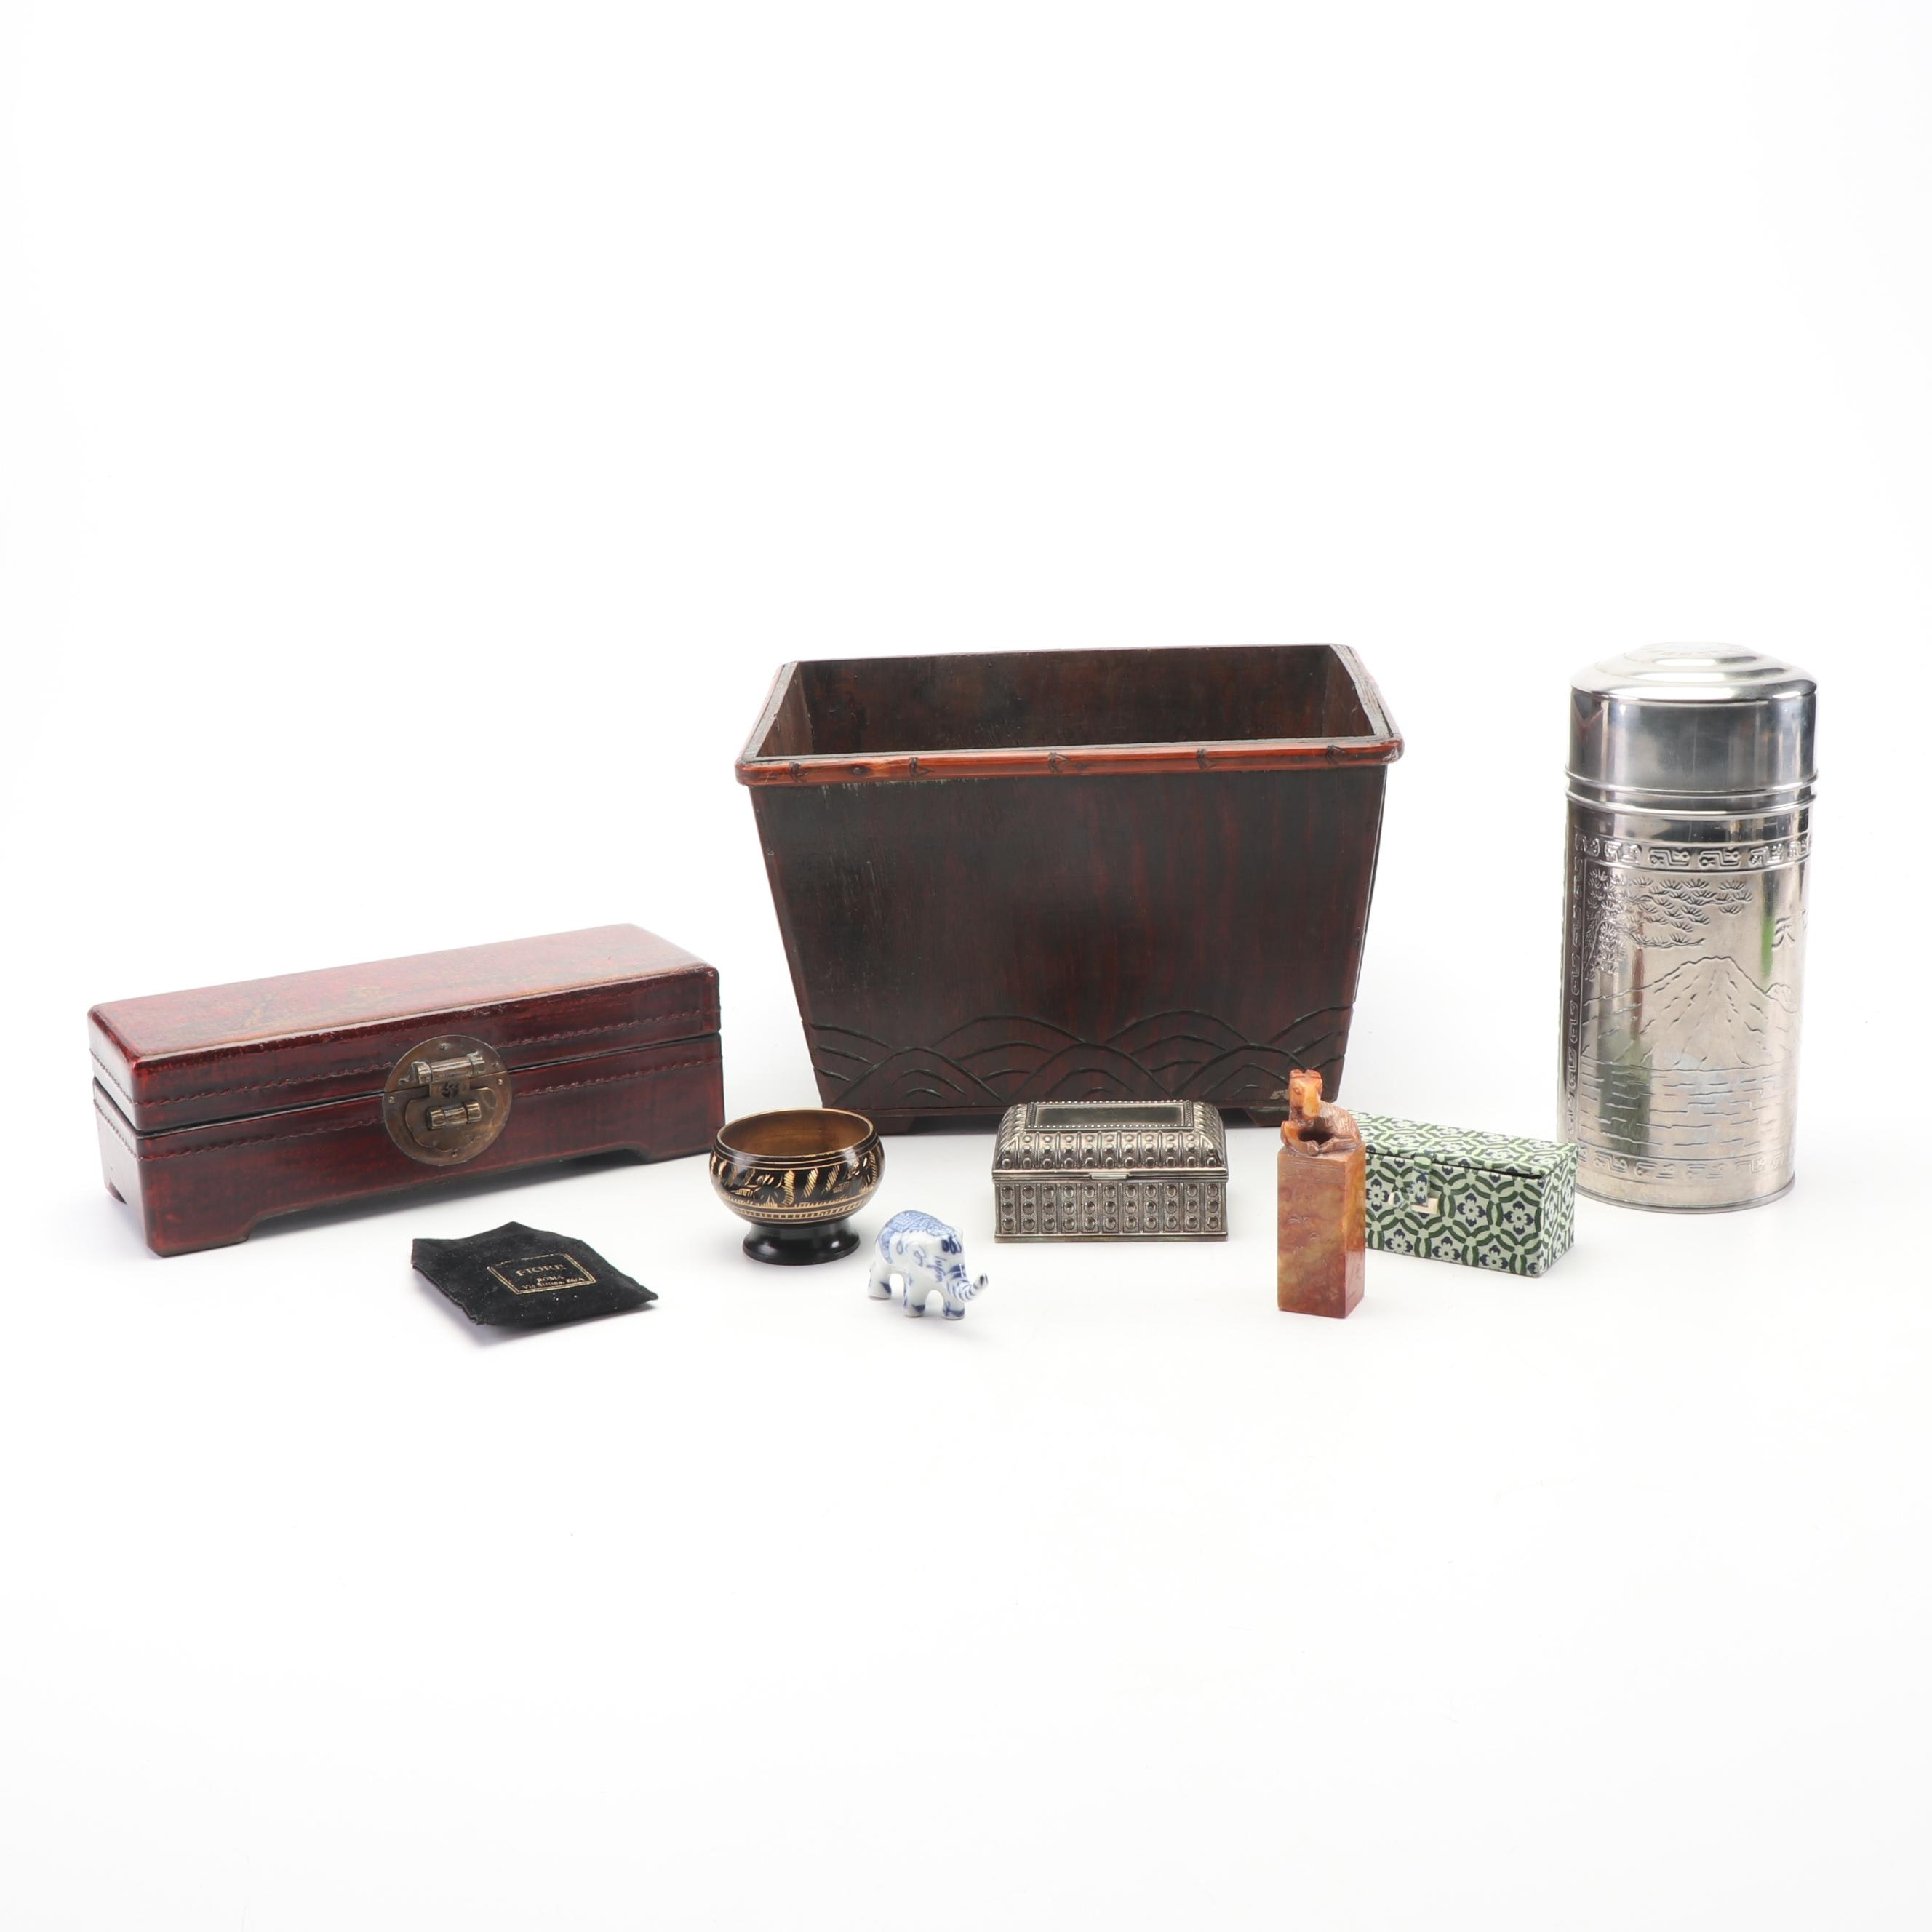 Chinese Stone Seal Stamp and Stainless Steel Tea Caddy with Trinket Boxes